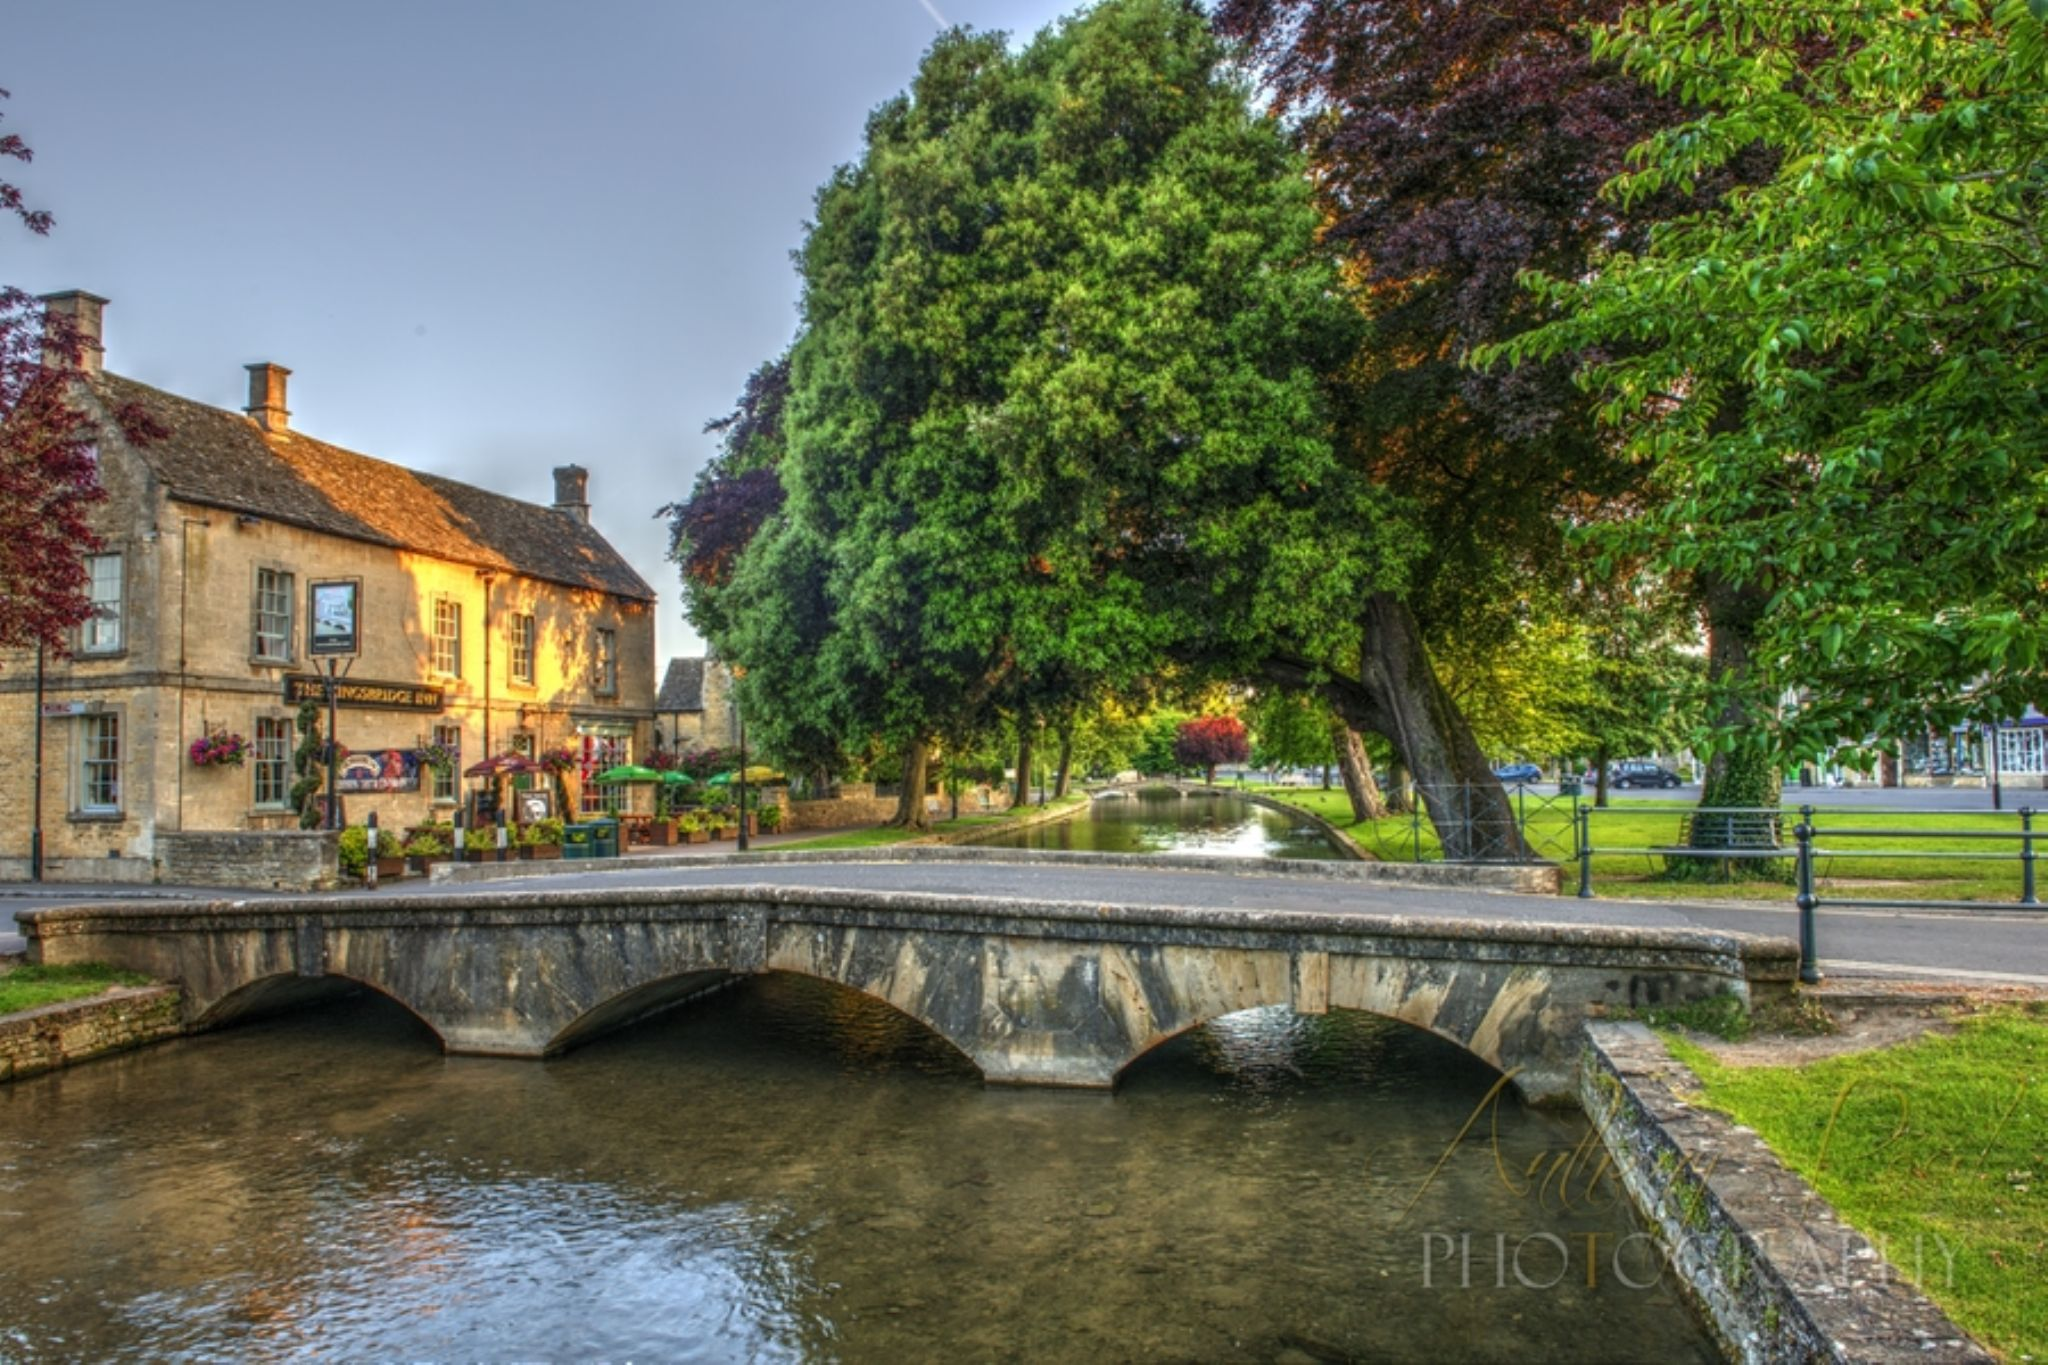 Bourton on the Water 210614-166_7_8 by Anthony Inwood